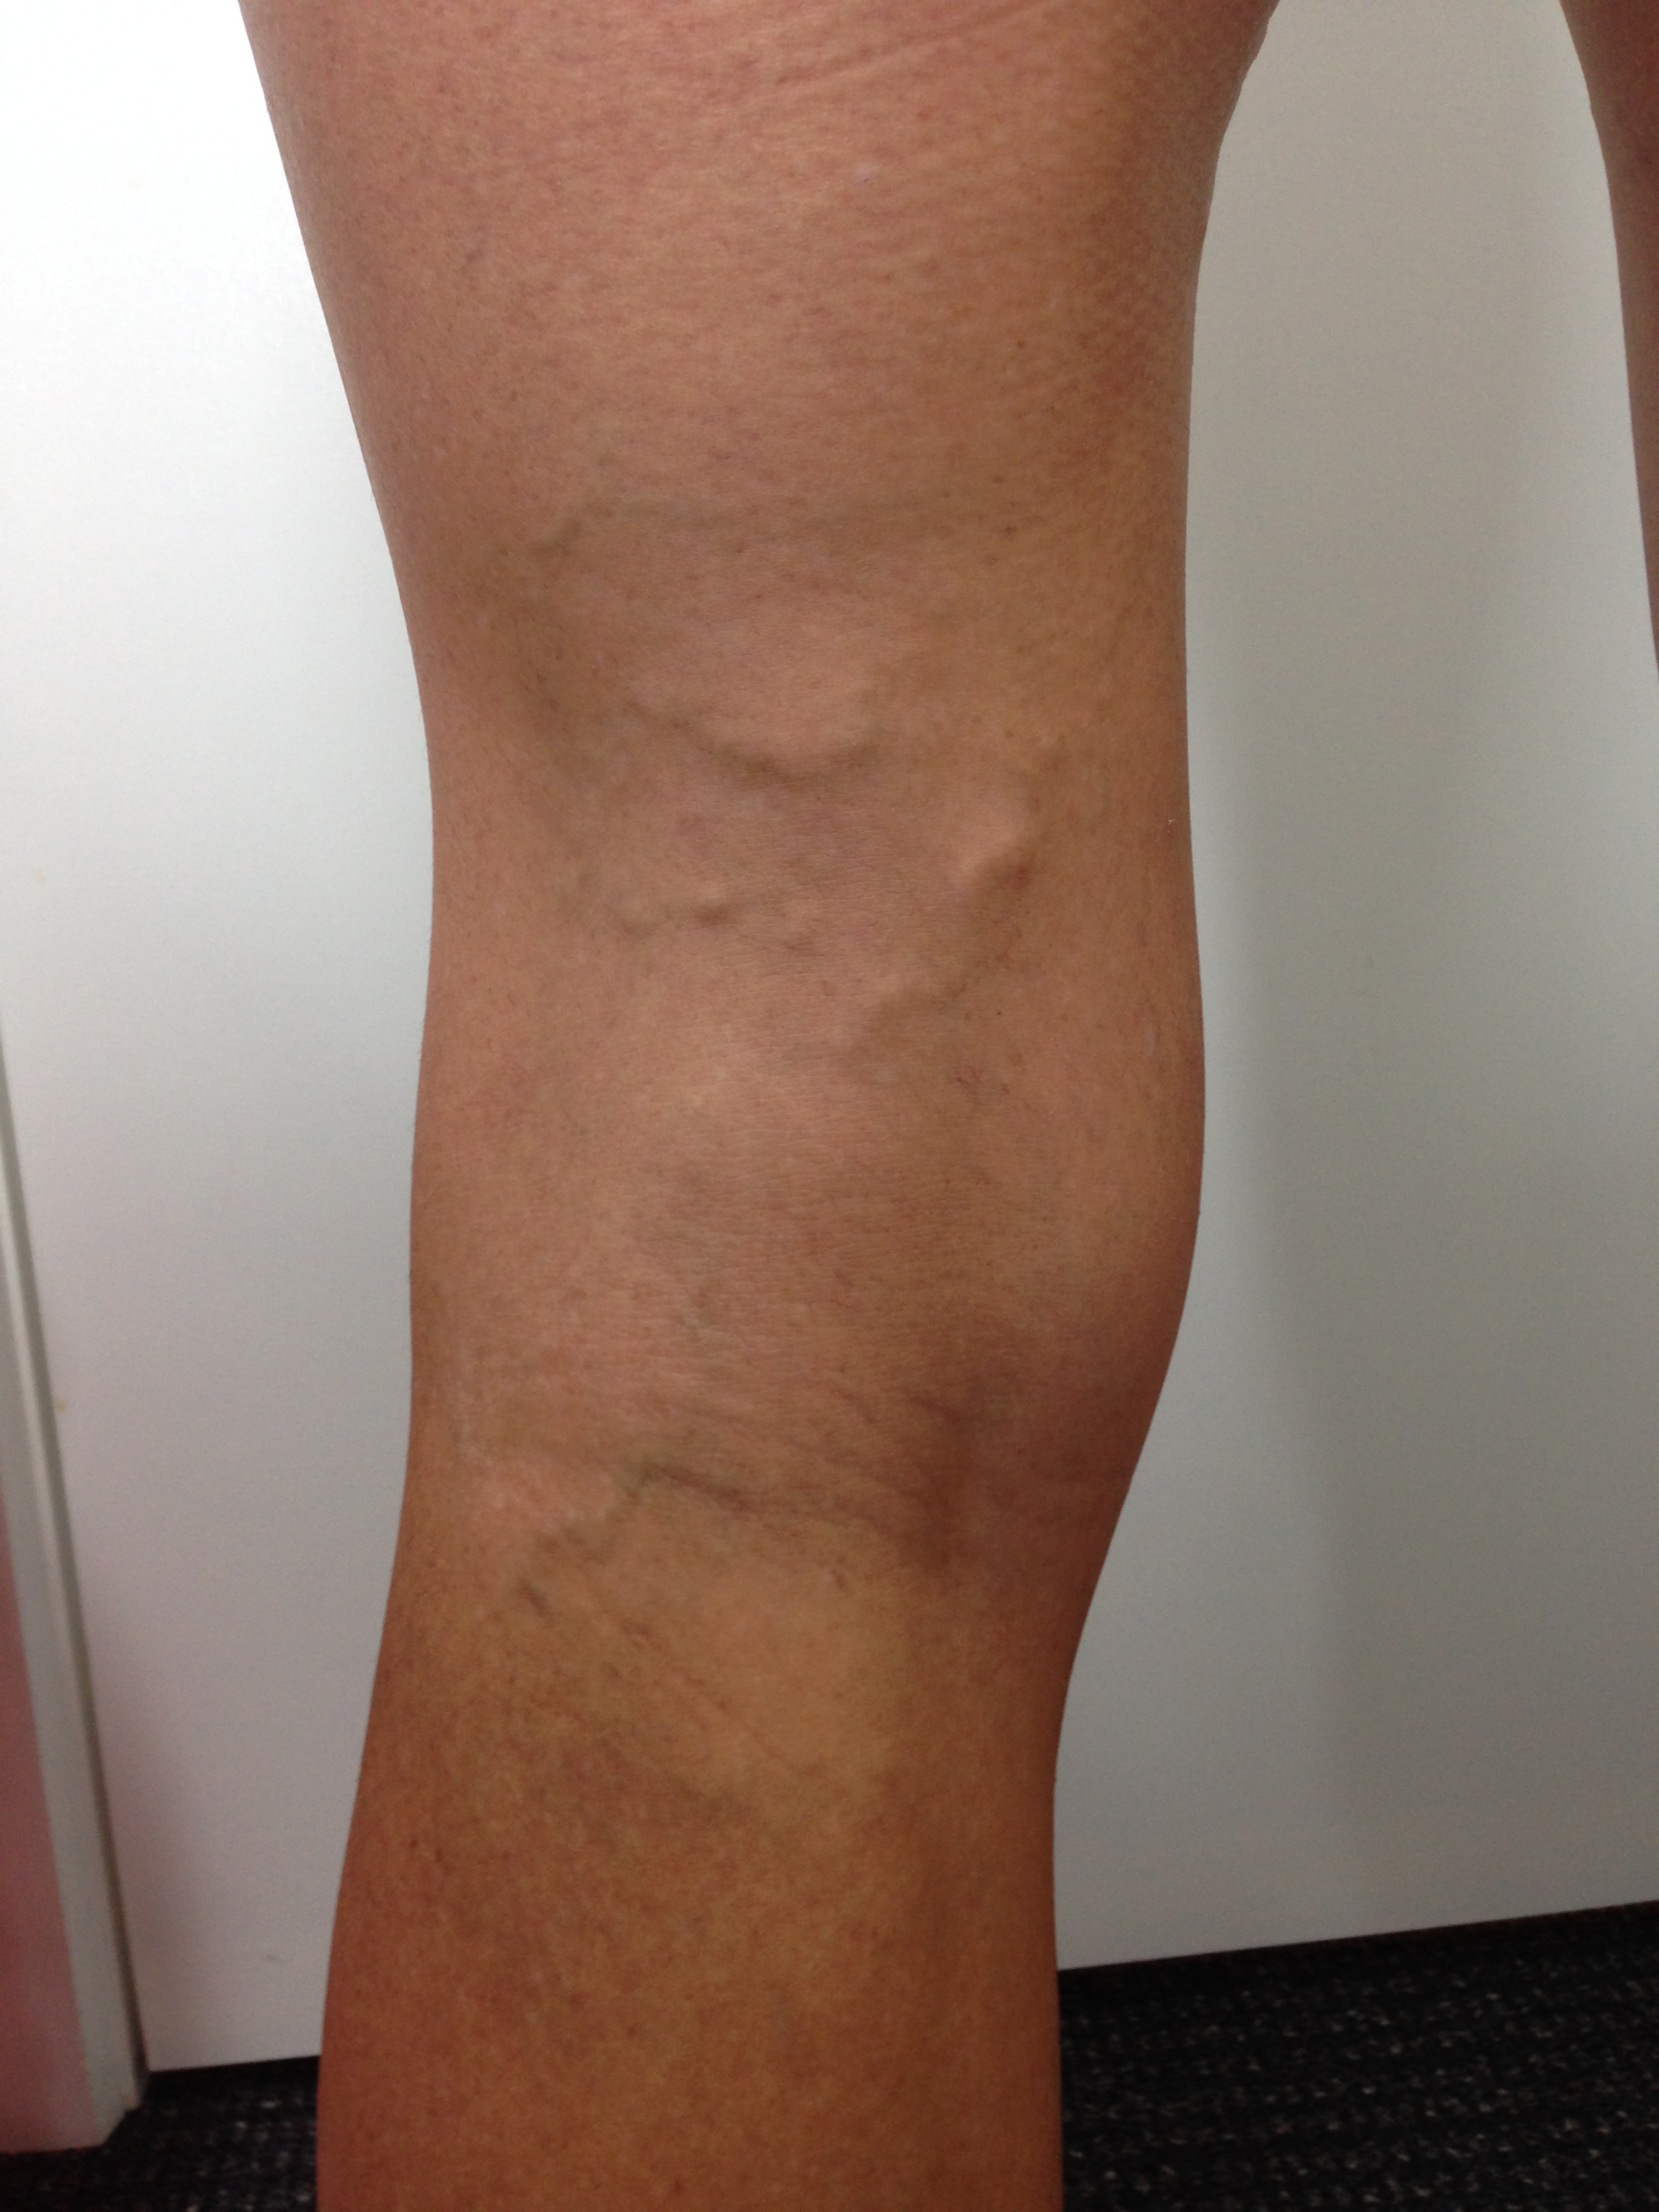 Treatment: Ultrasound Guided Sclerotherapy - 4 months.